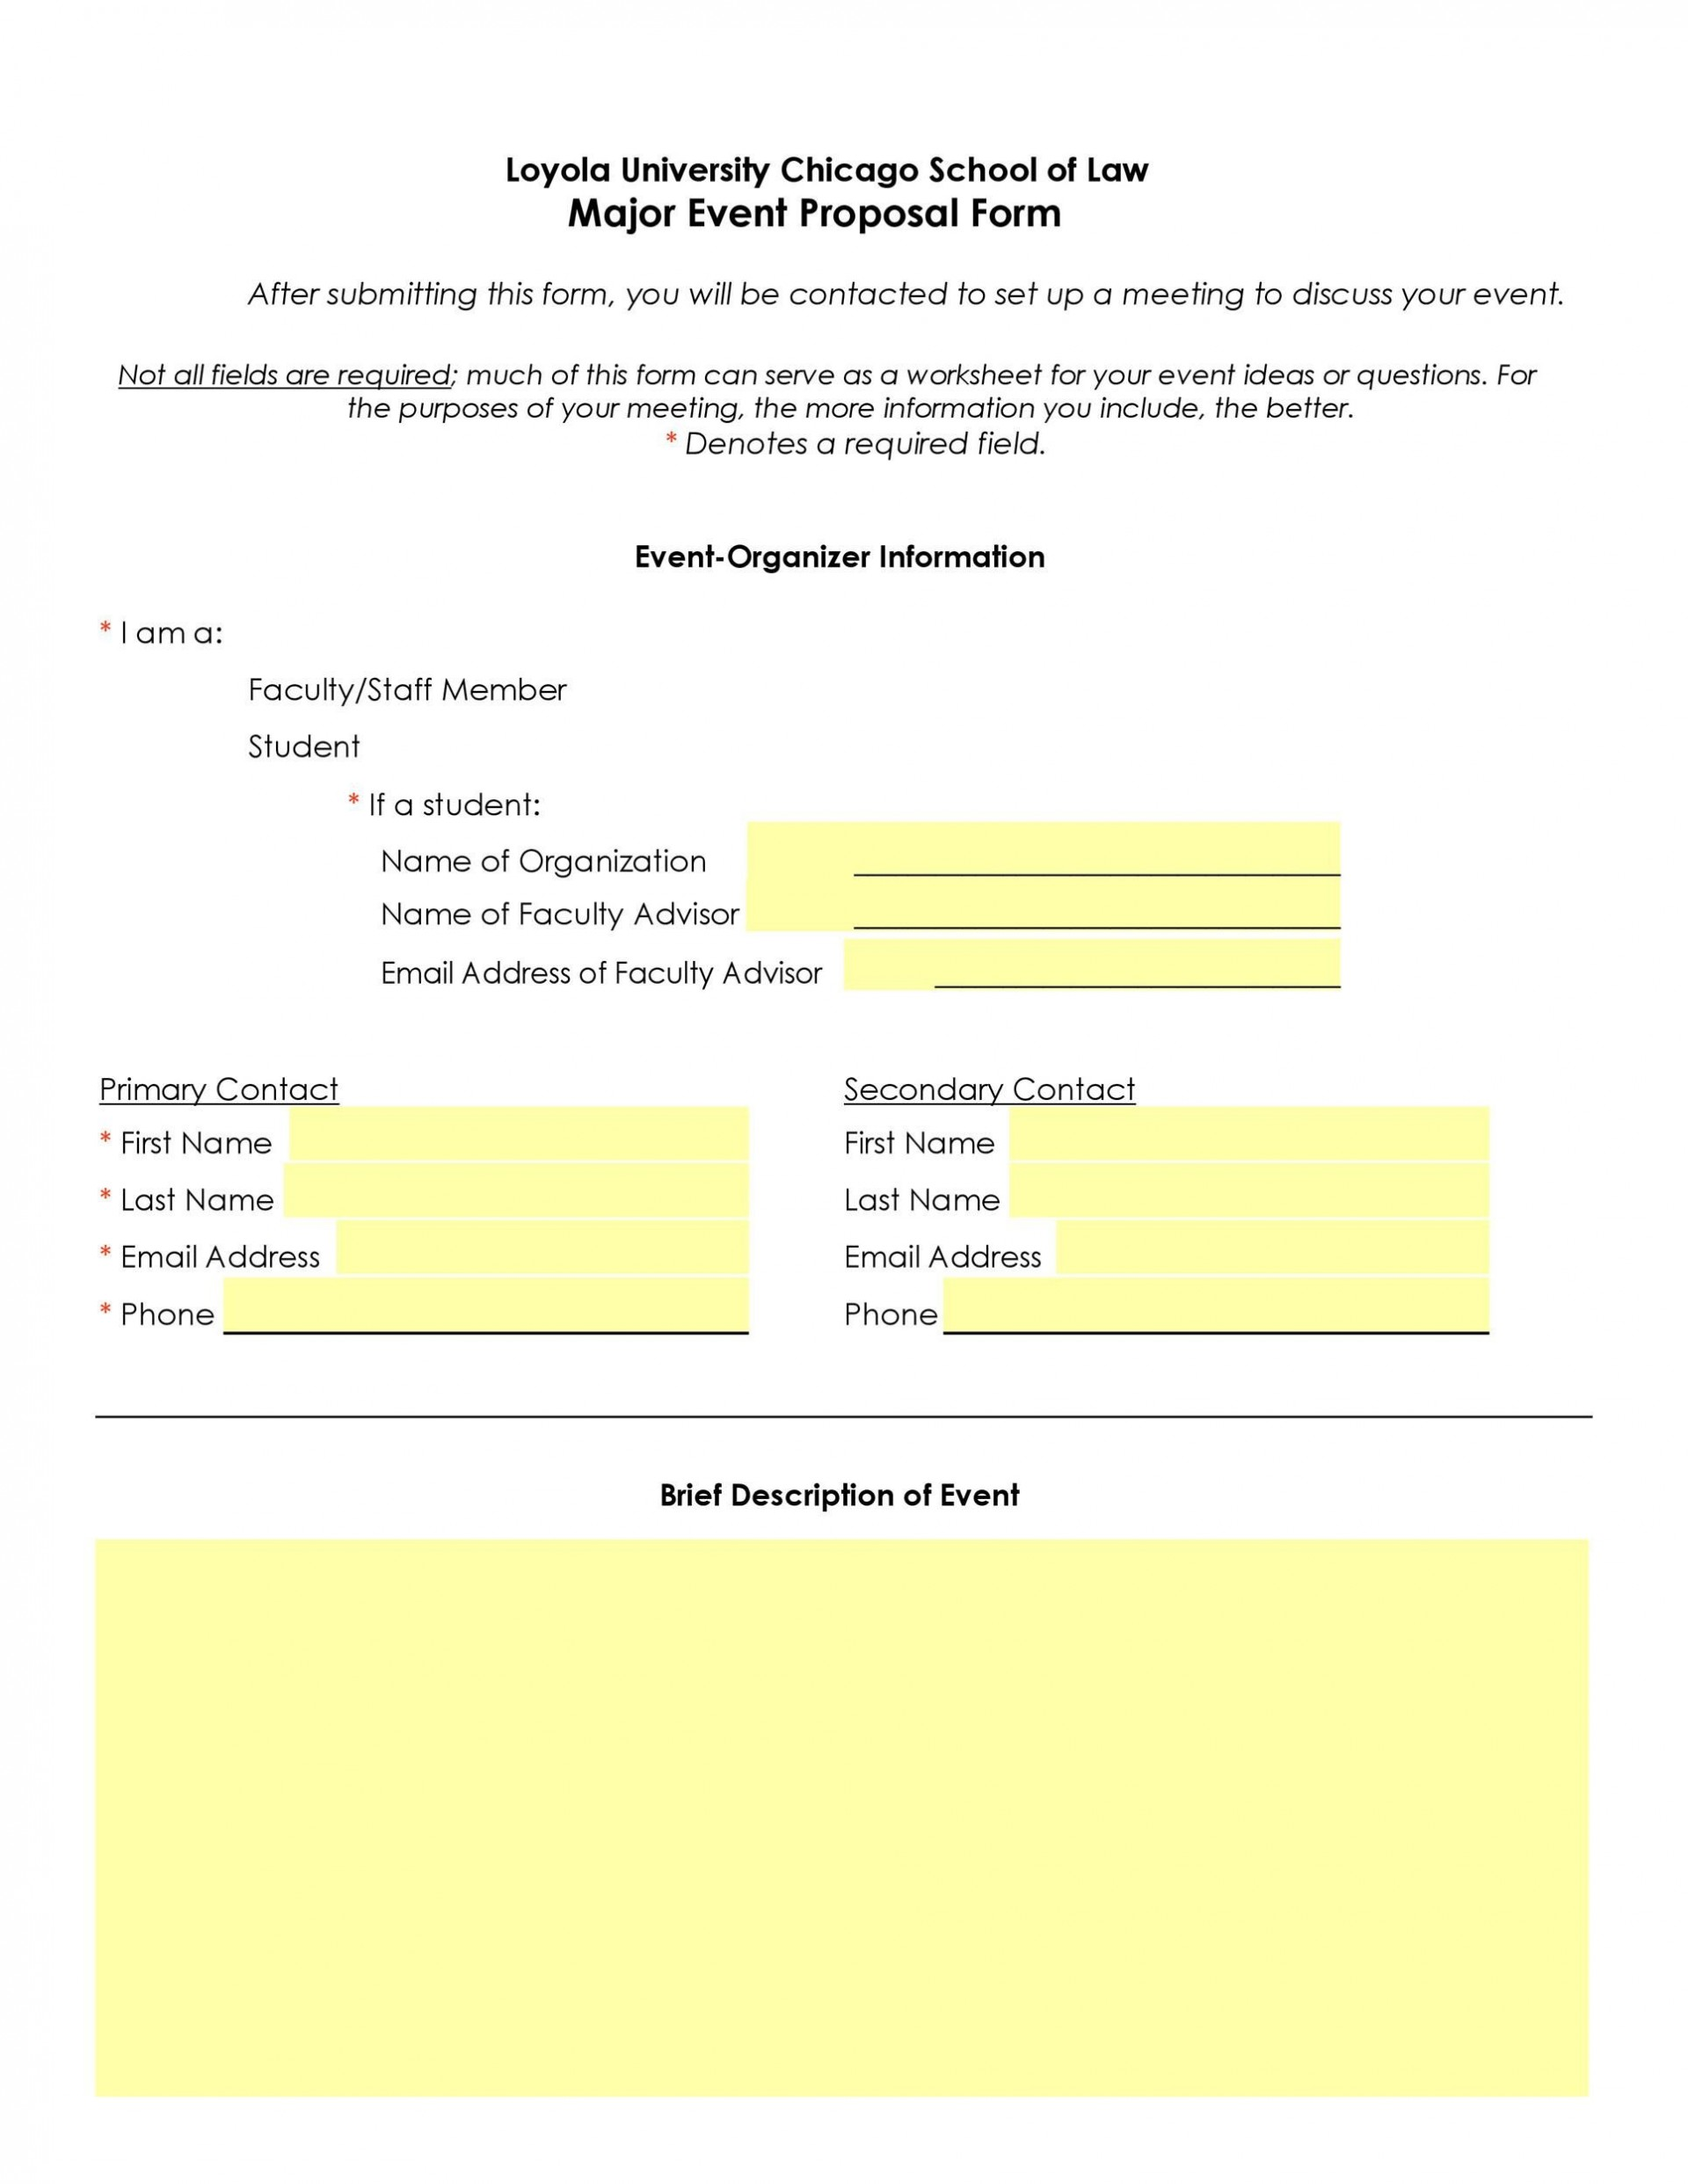 005 Singular Free Event Planner Template Word High Def  Planning Contract Checklist1920